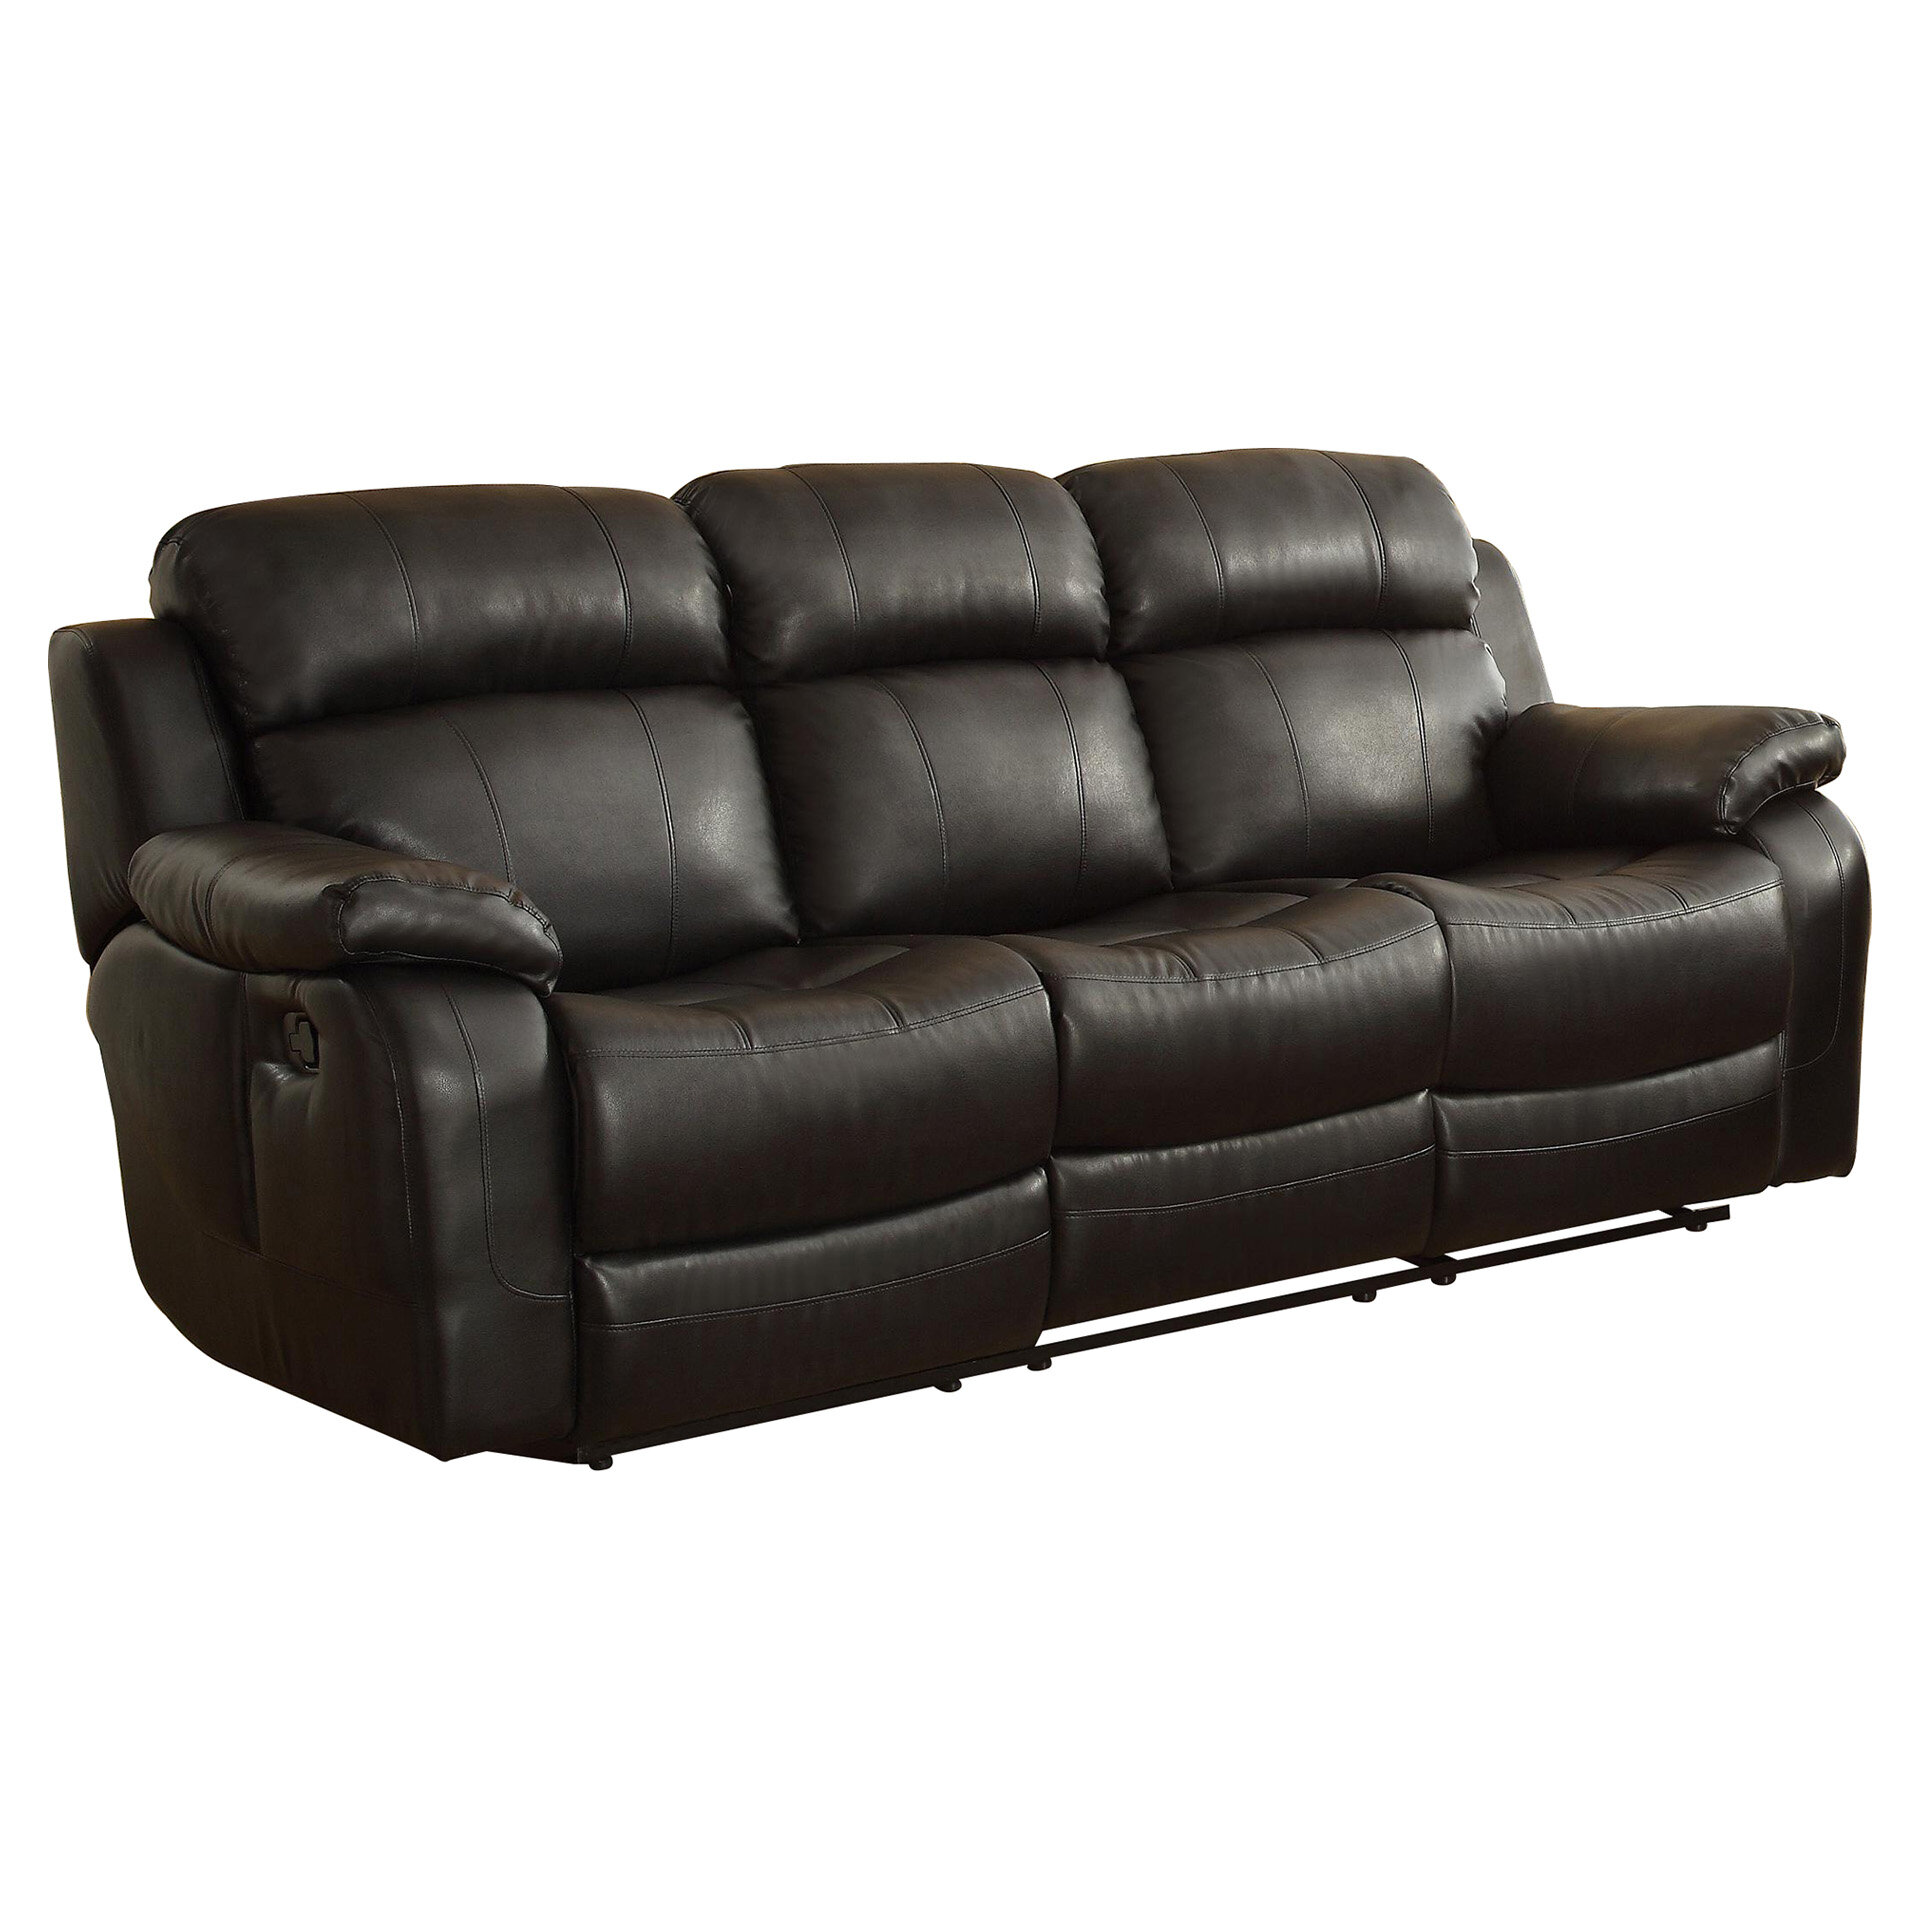 Darby Home Co Hall Double Reclining Sofa & Reviews